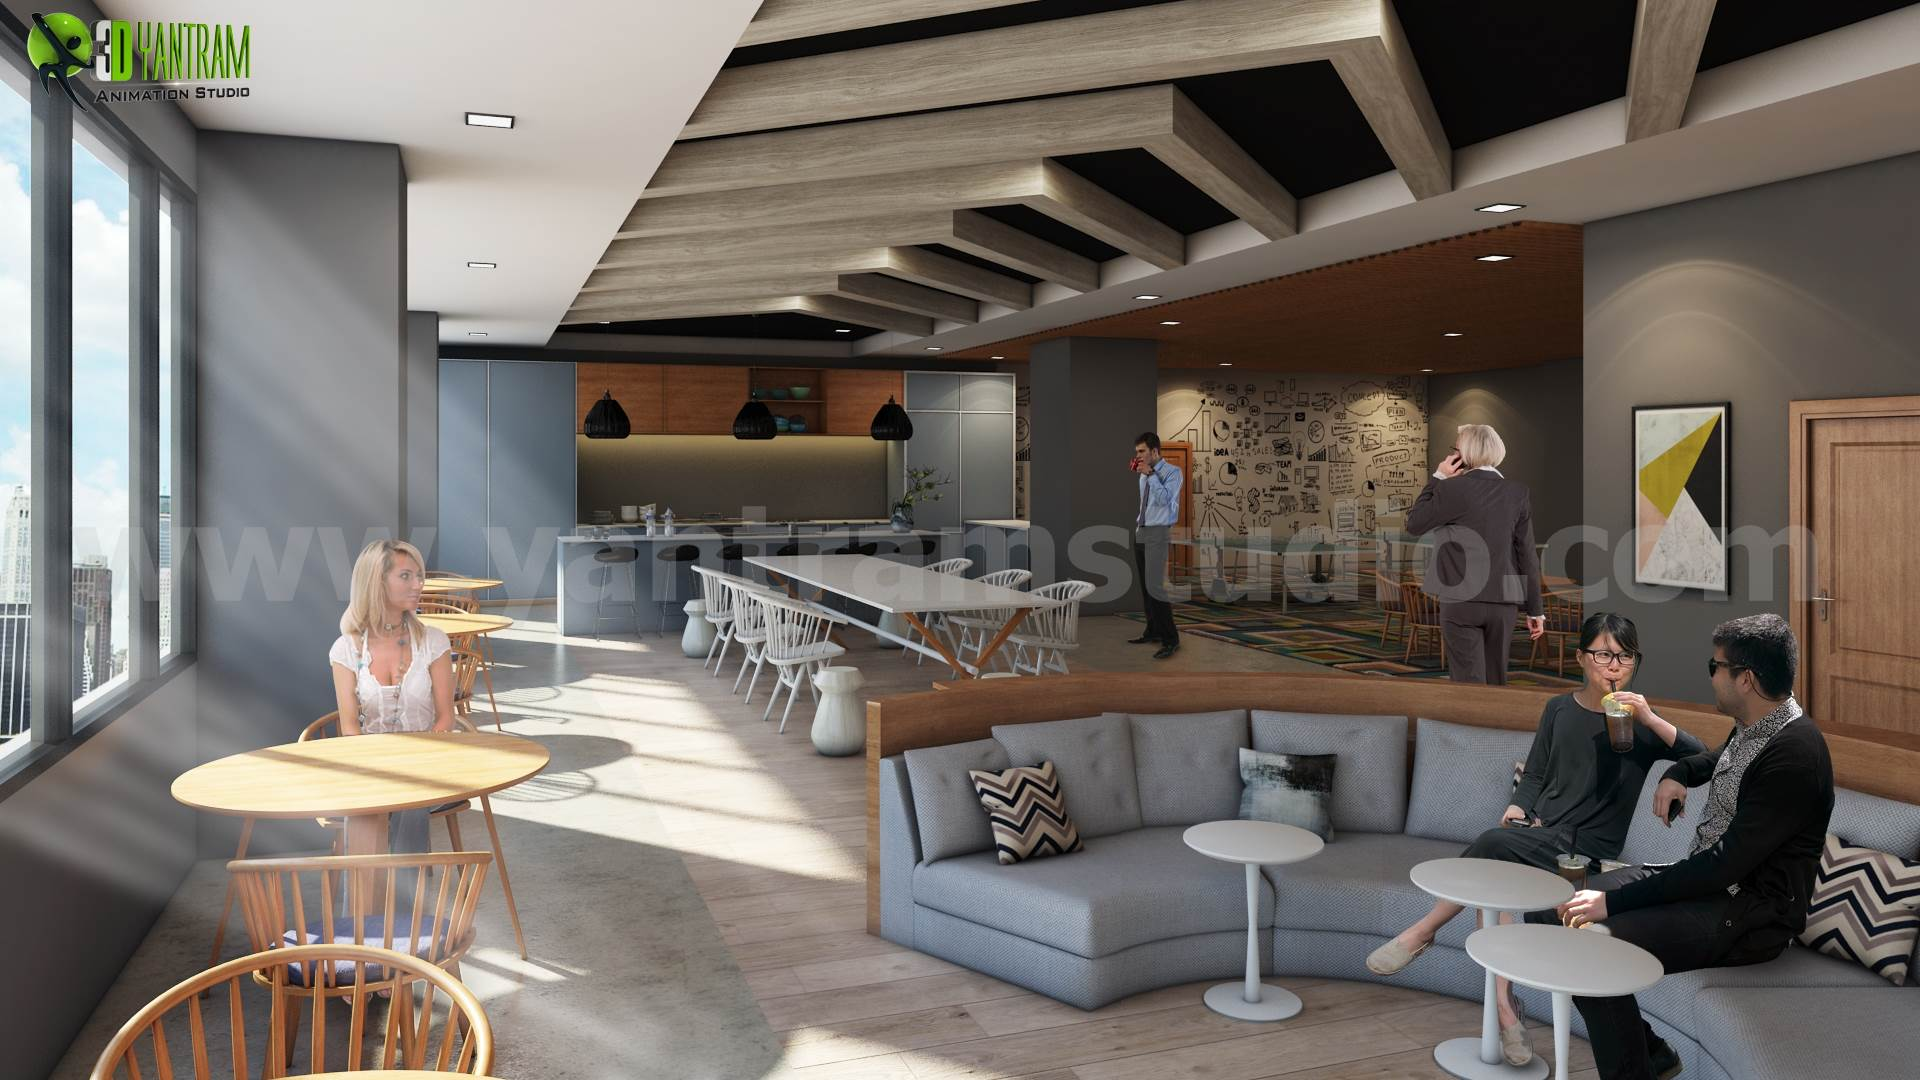 Creative ideas for Office Interior Design by Yantram 3d interior designers Commercial Modern Interior Office Design Ideas for your commercial office. 3 Renders includes all different ares with decent furniture like Waiting area, Refresh Bar, Kitchen, dining area.  by yantramstudio